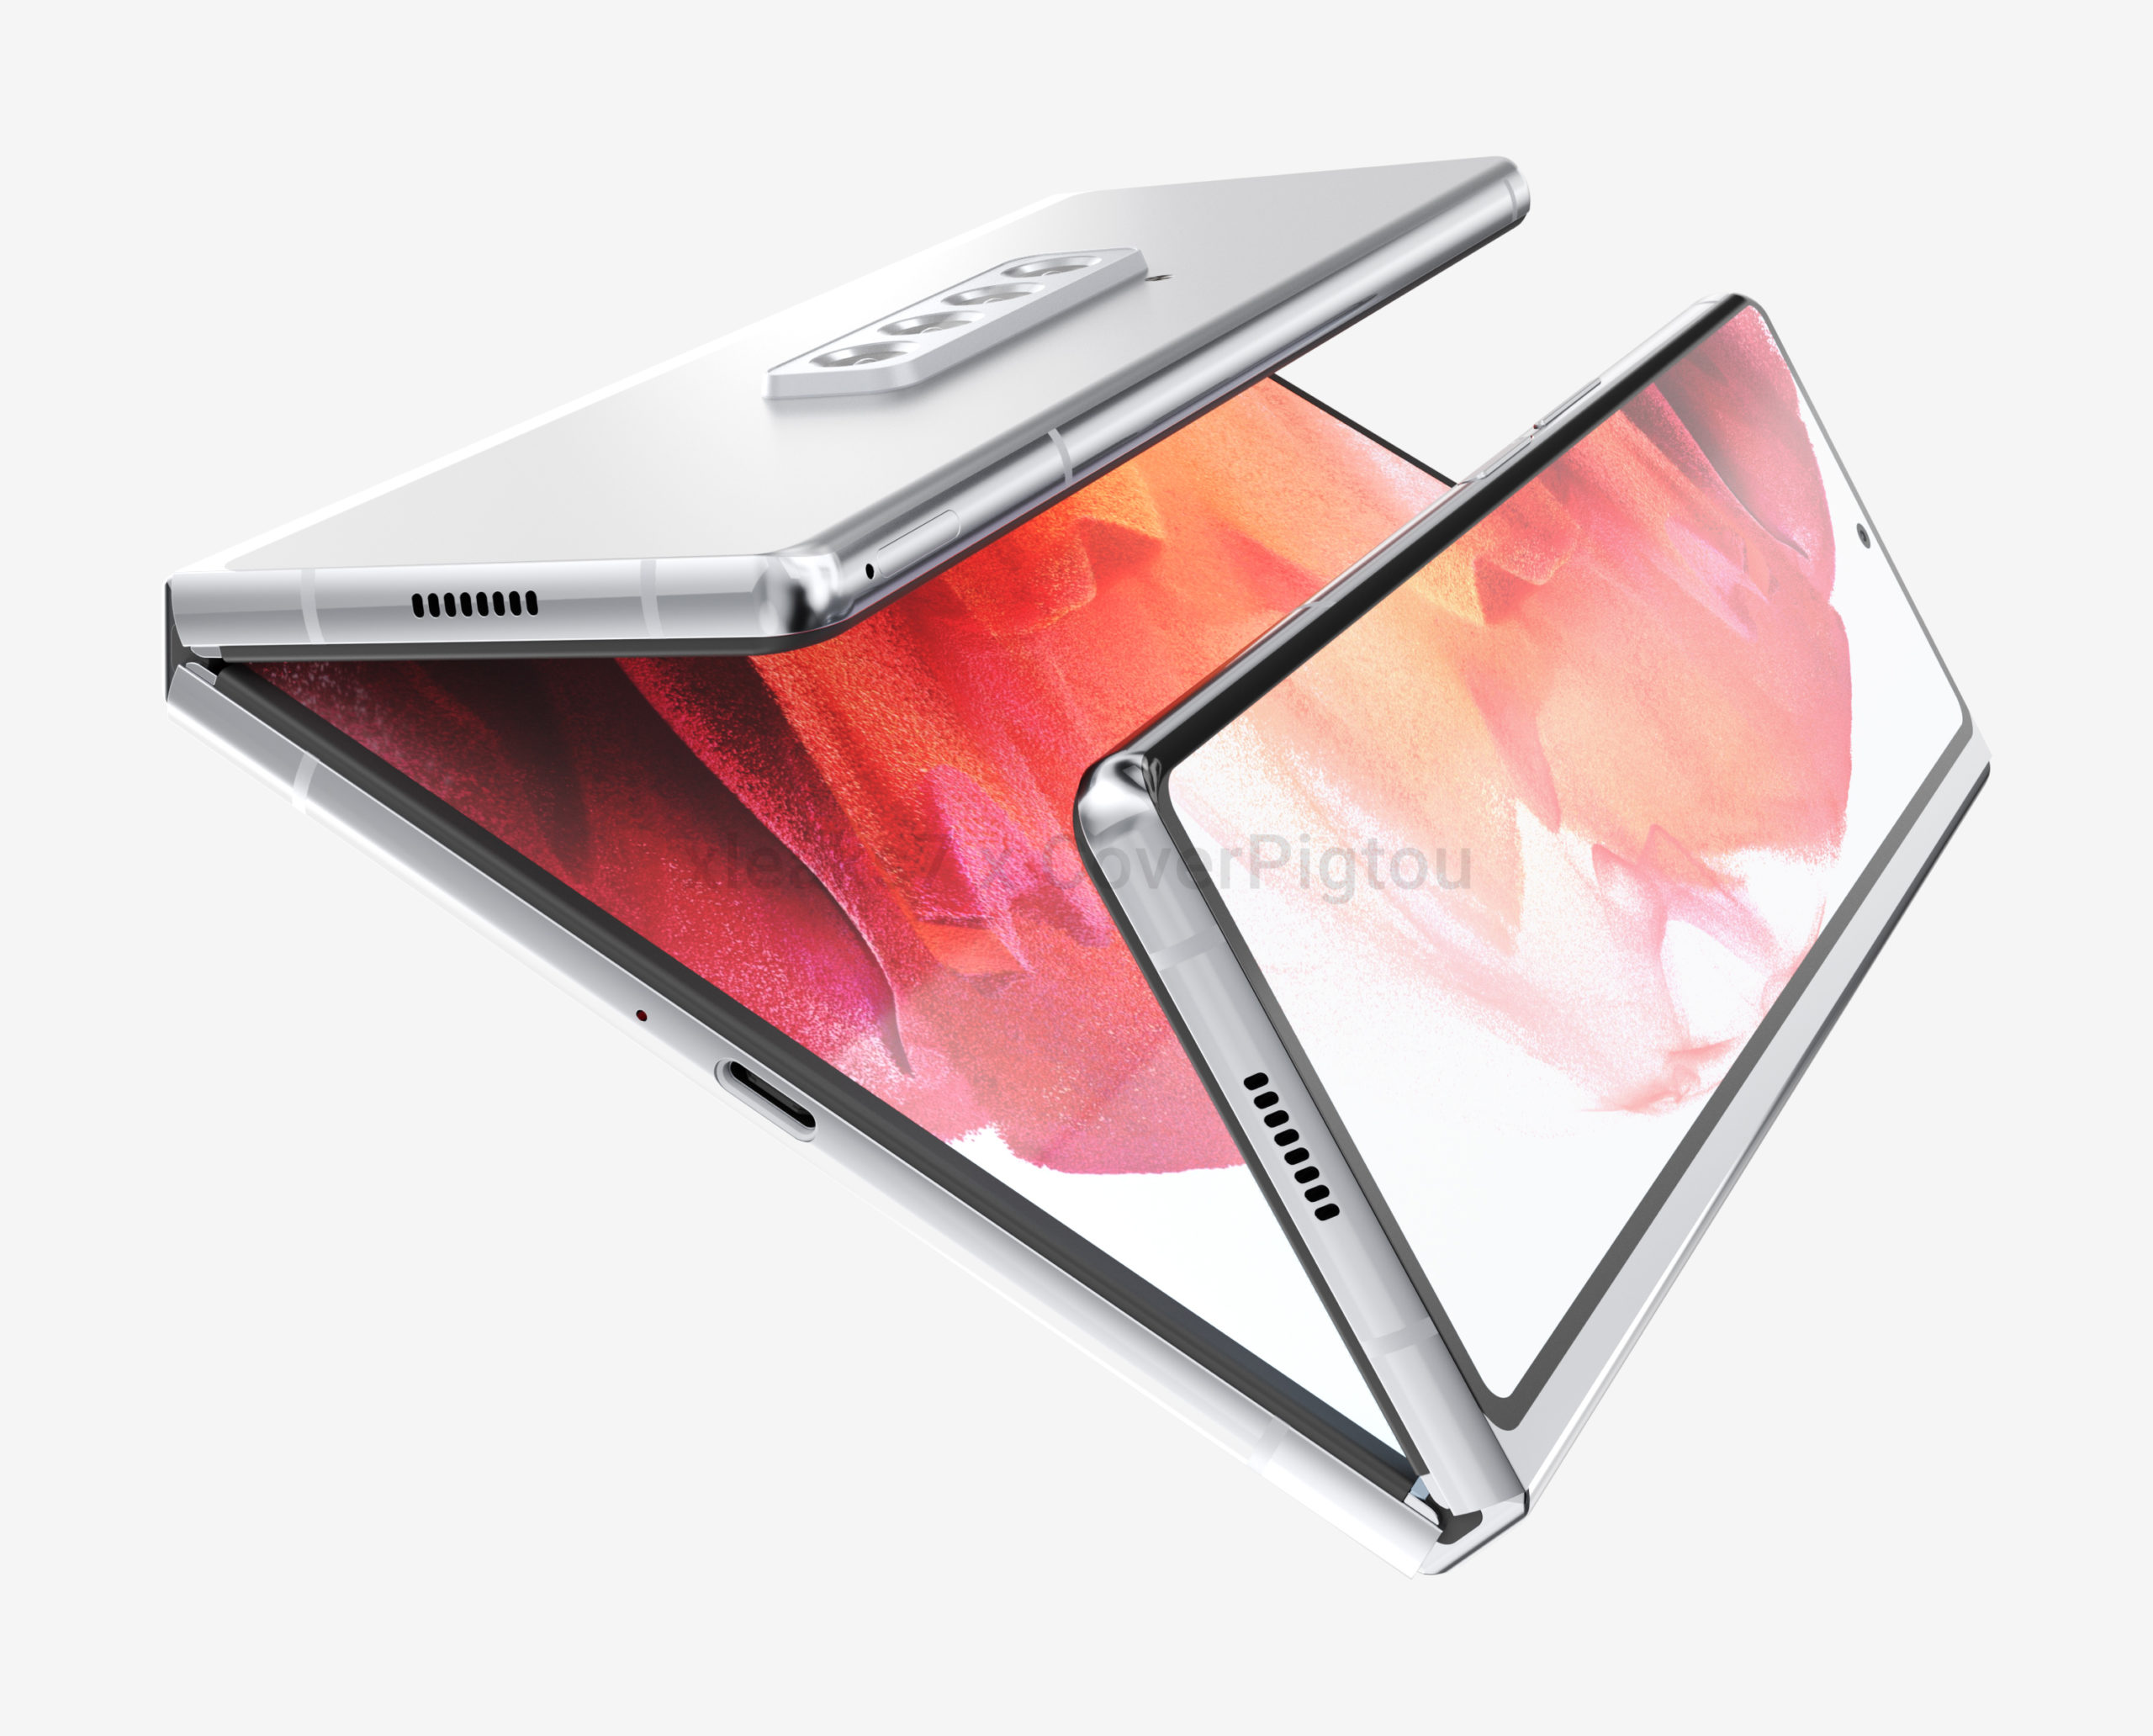 Forget Galaxy Z Fold 3: Samsung just revealed stunning foldable phone of the future